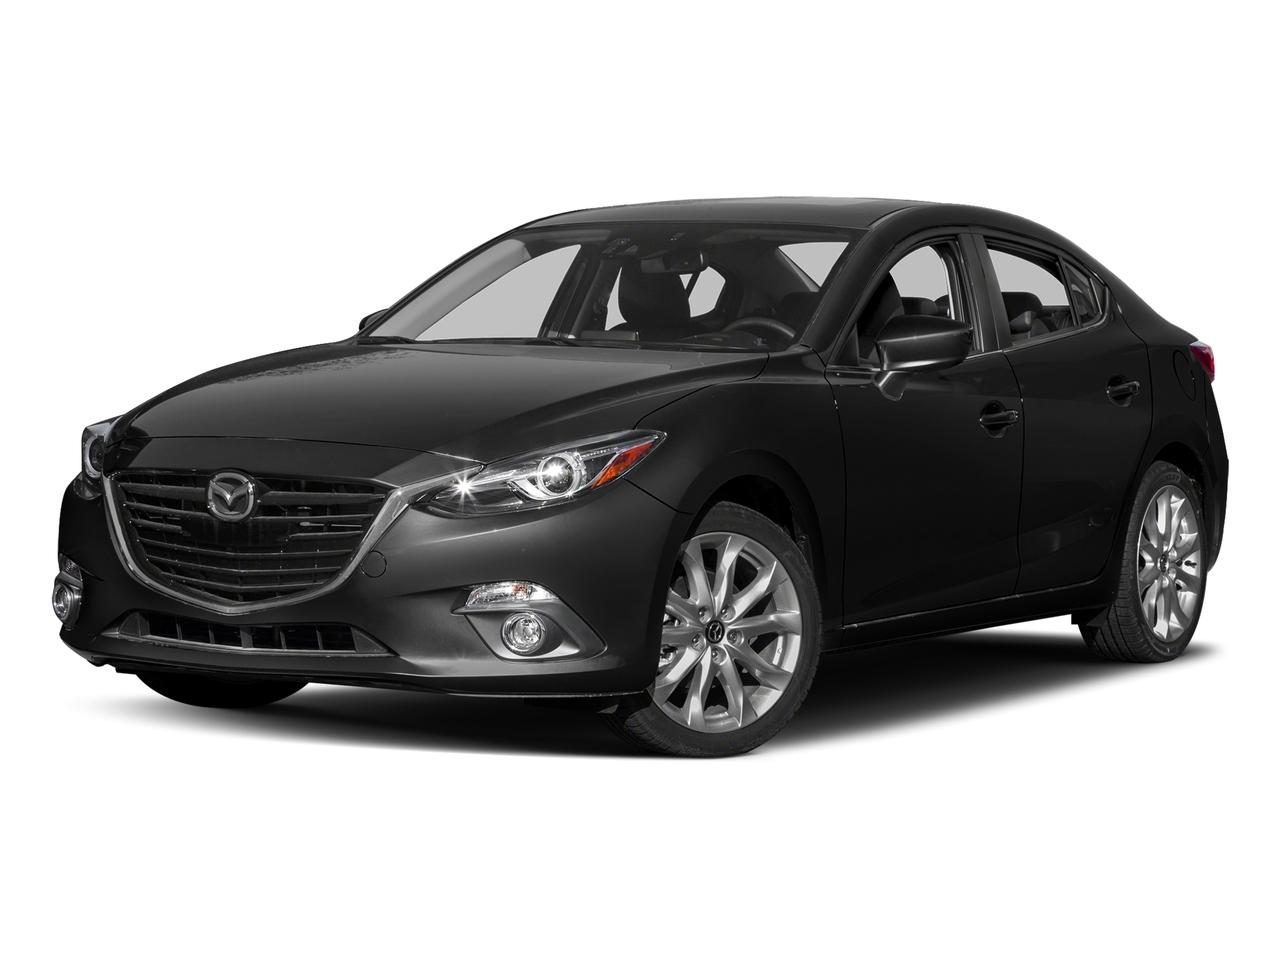 2016 Mazda Mazda3 Vehicle Photo in ANNAPOLIS, MD 21401